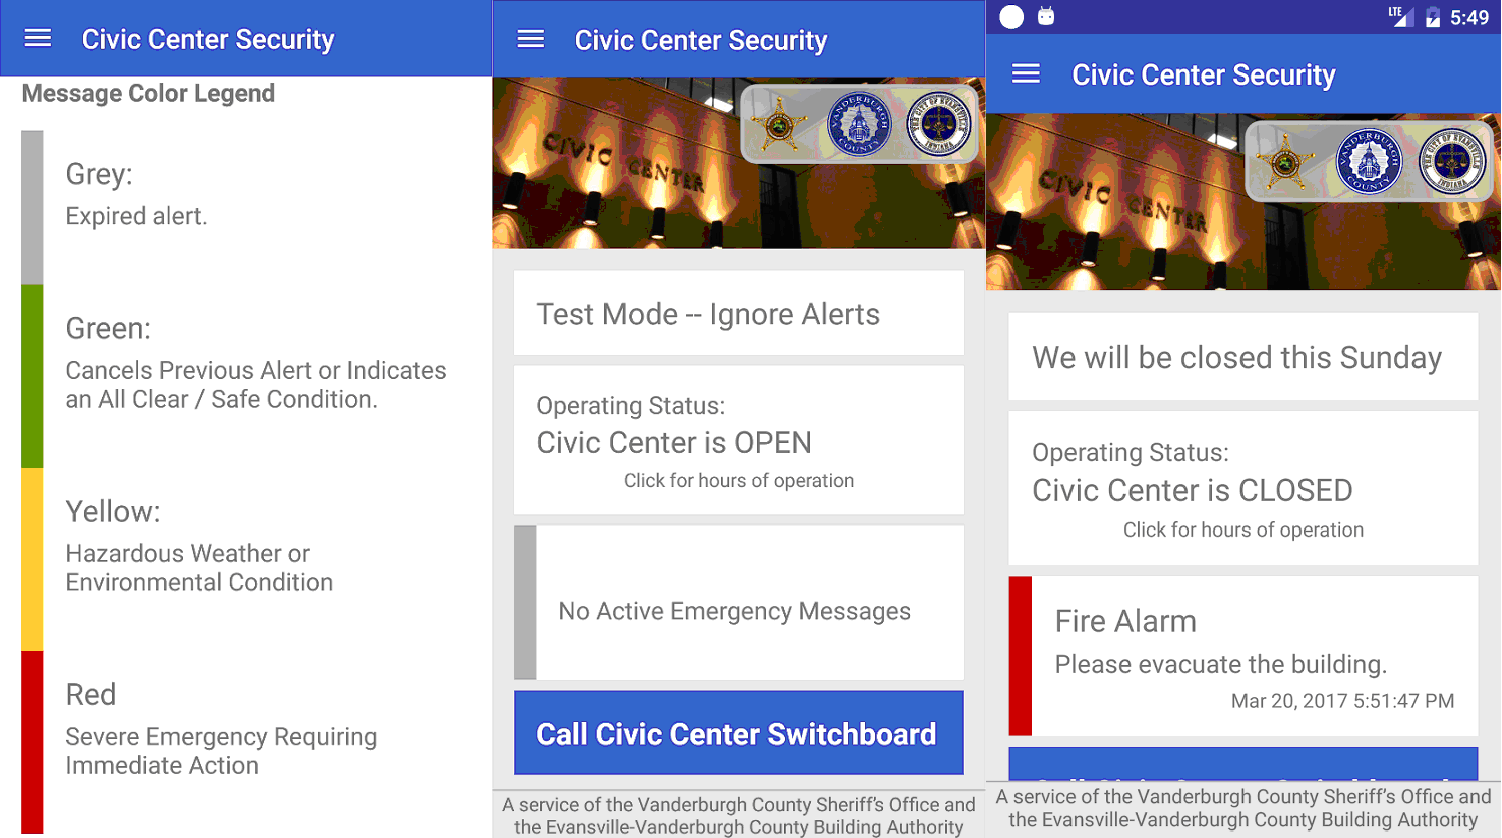 Civic Center Security App Designed to Keep the Public Safe